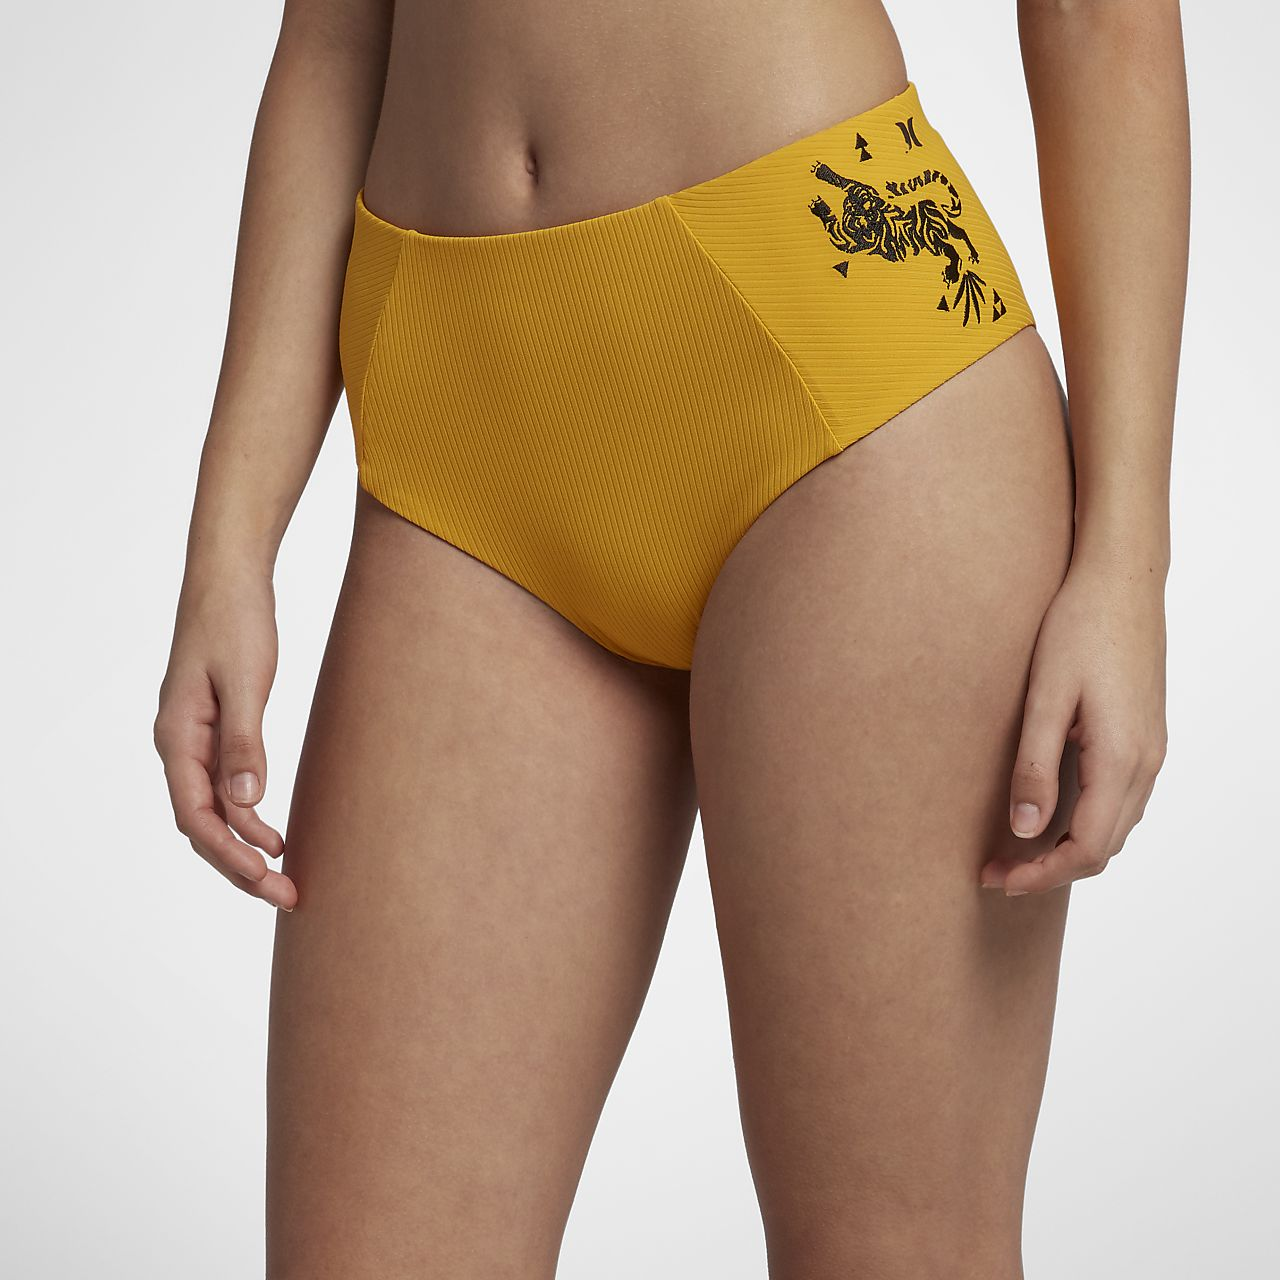 Hurley Quick-Dry Embroidered Women's High-Waisted Surf Bottoms